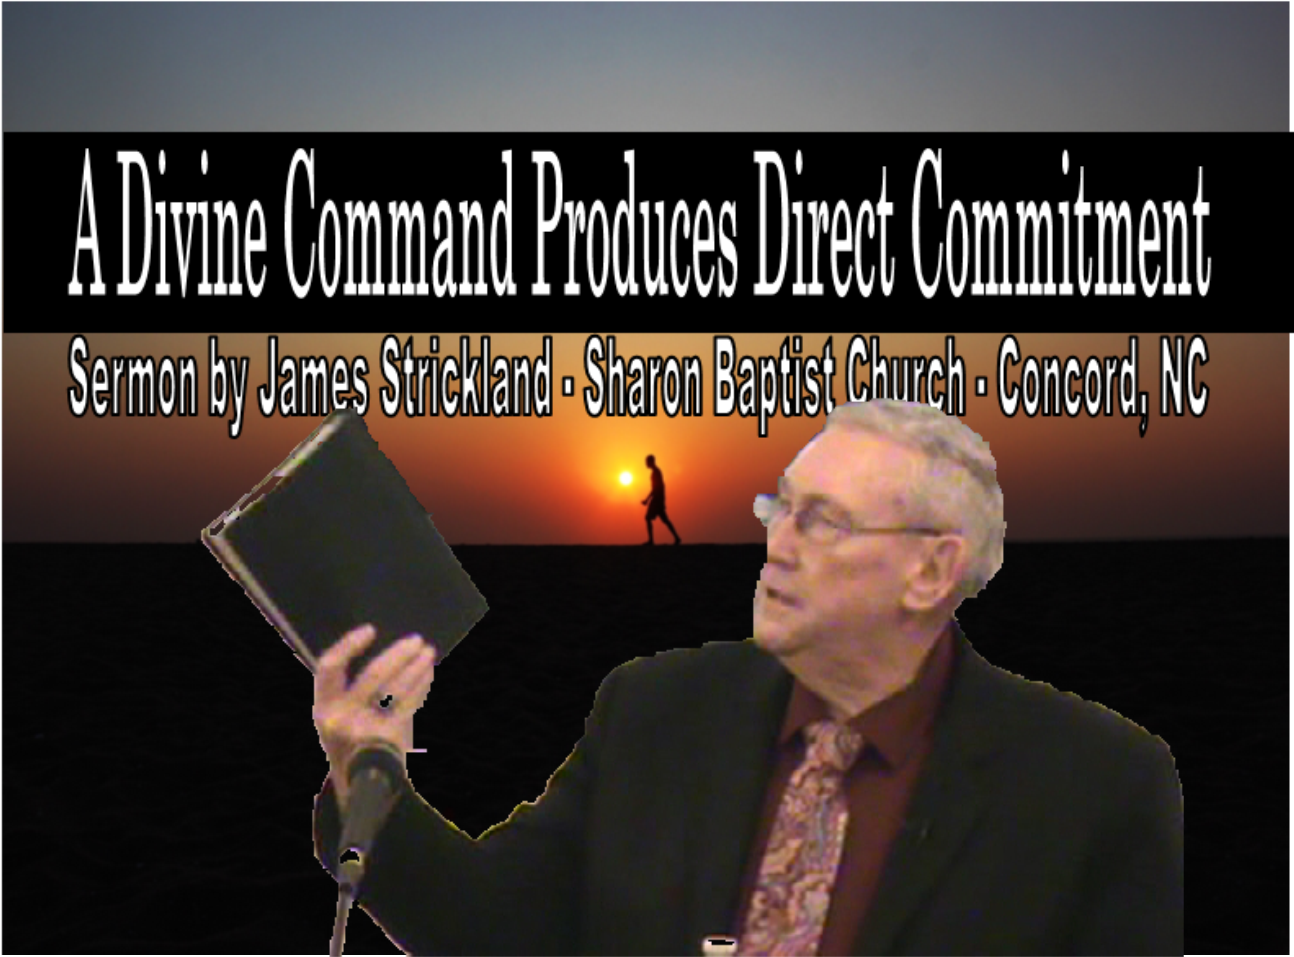 A Divine Command Produces Direct Commitment